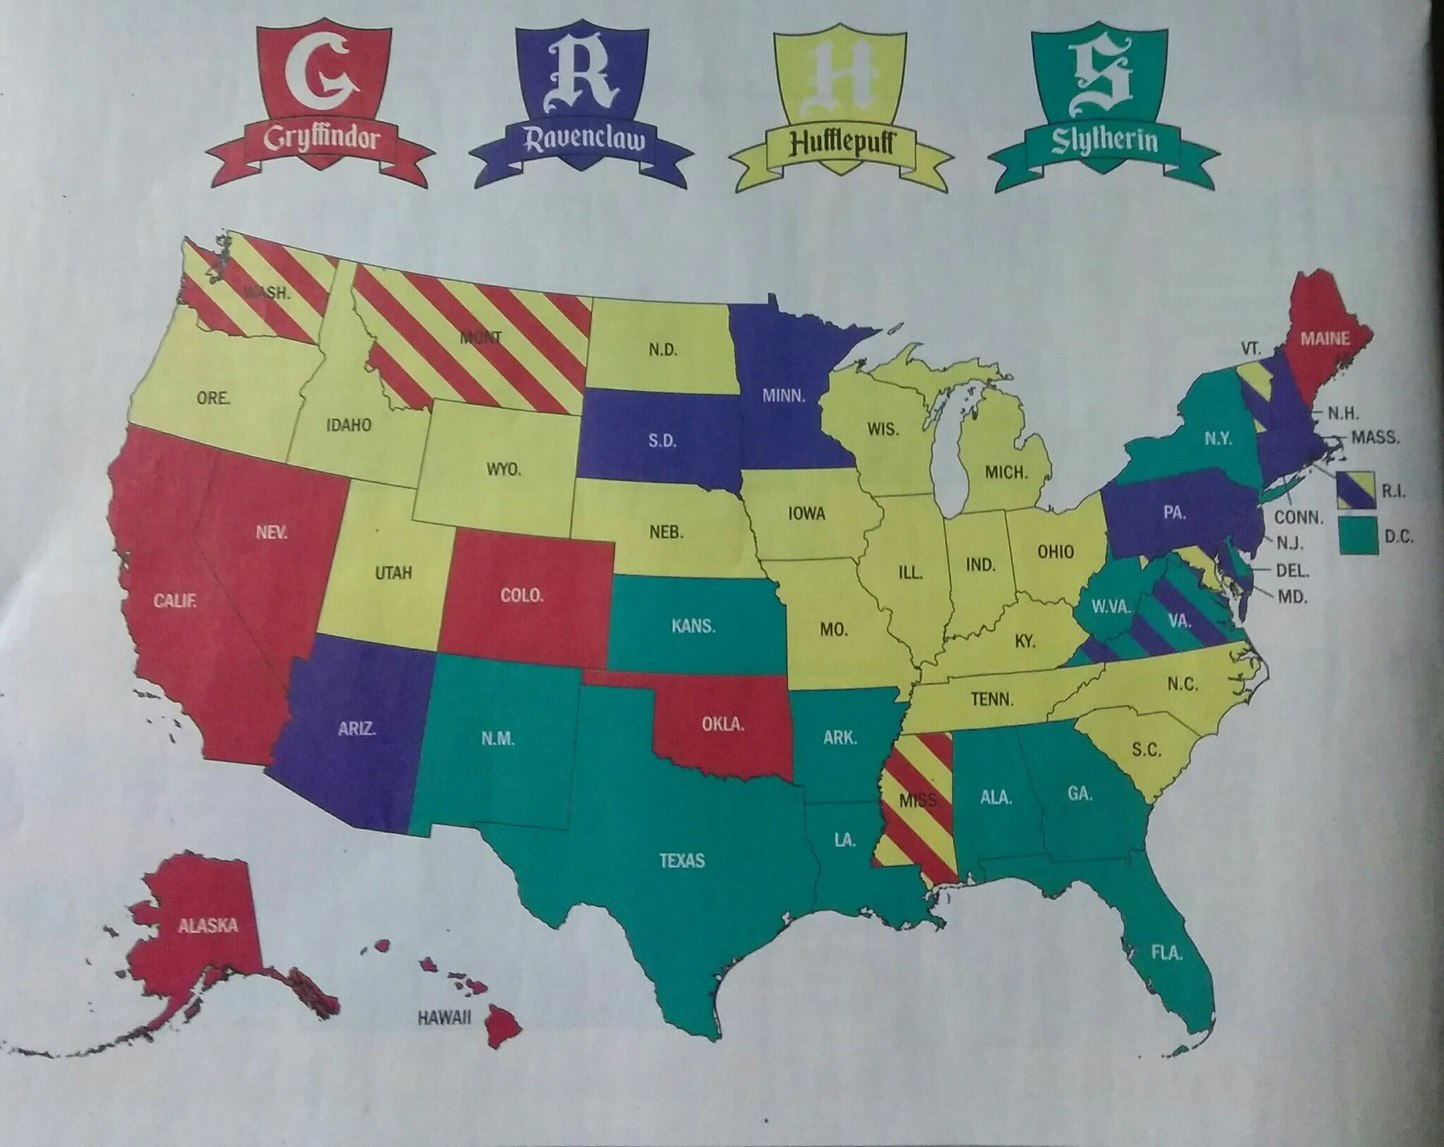 Time's best use of time, which state is your HP house? - meme